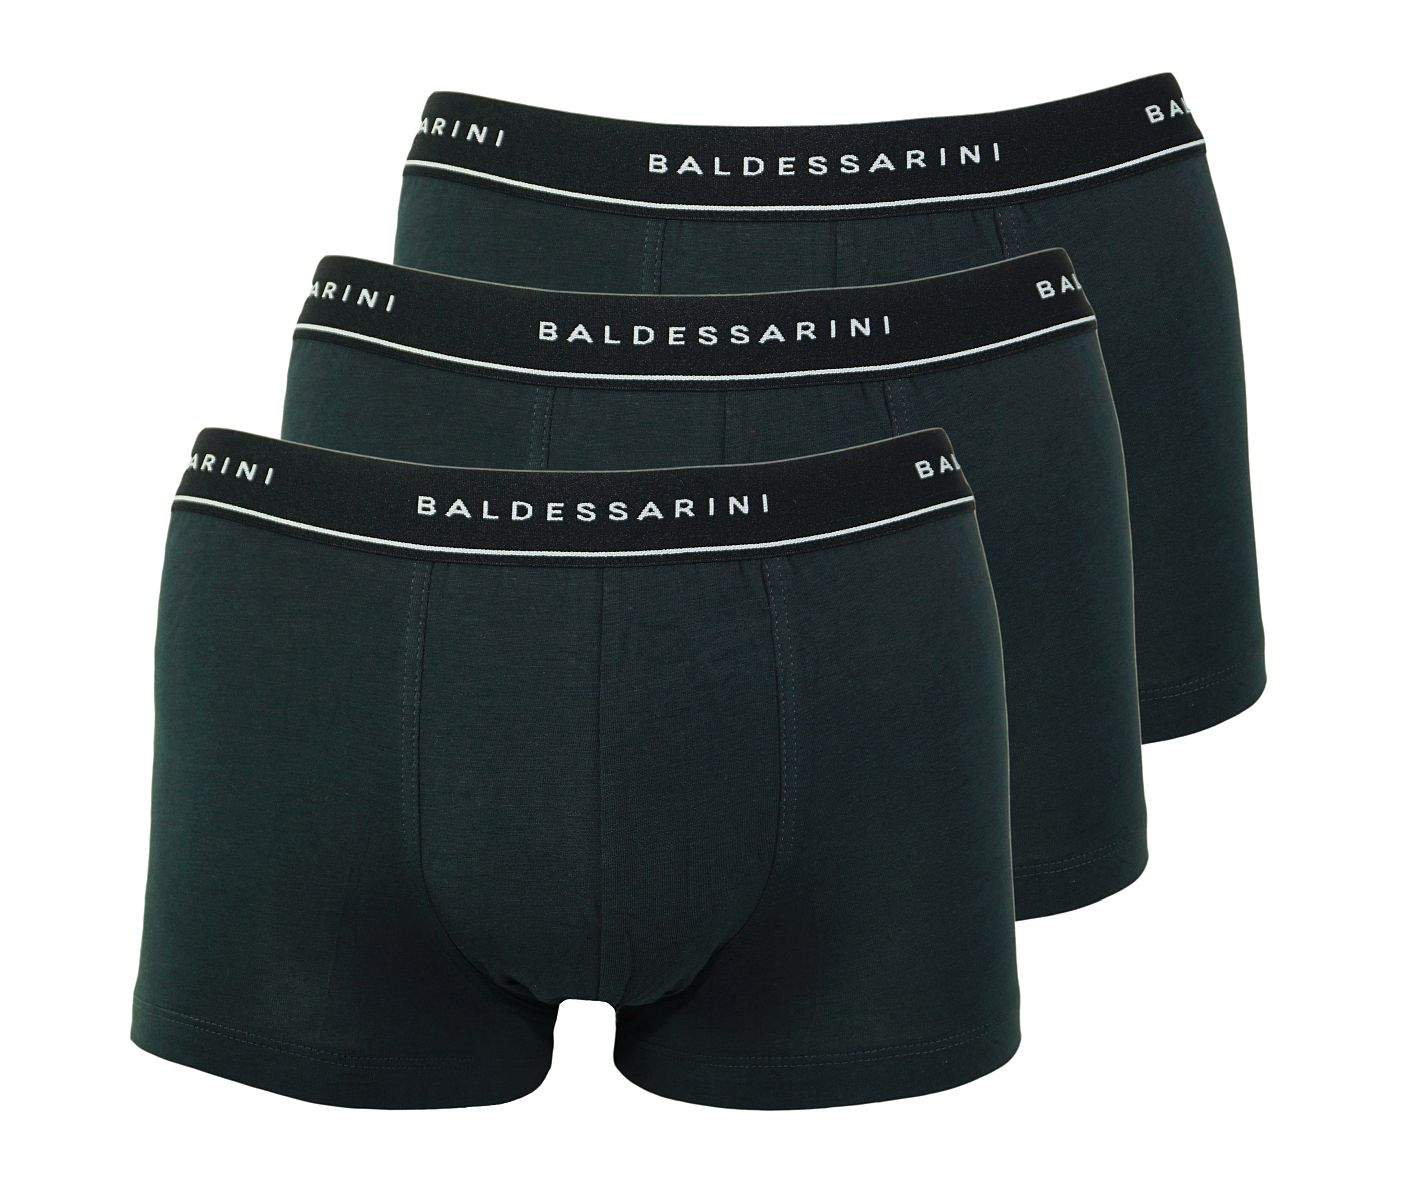 Baldessarini 3er Pack Shorts Trunks 90002 6061 9009 jet black W18-BSS1